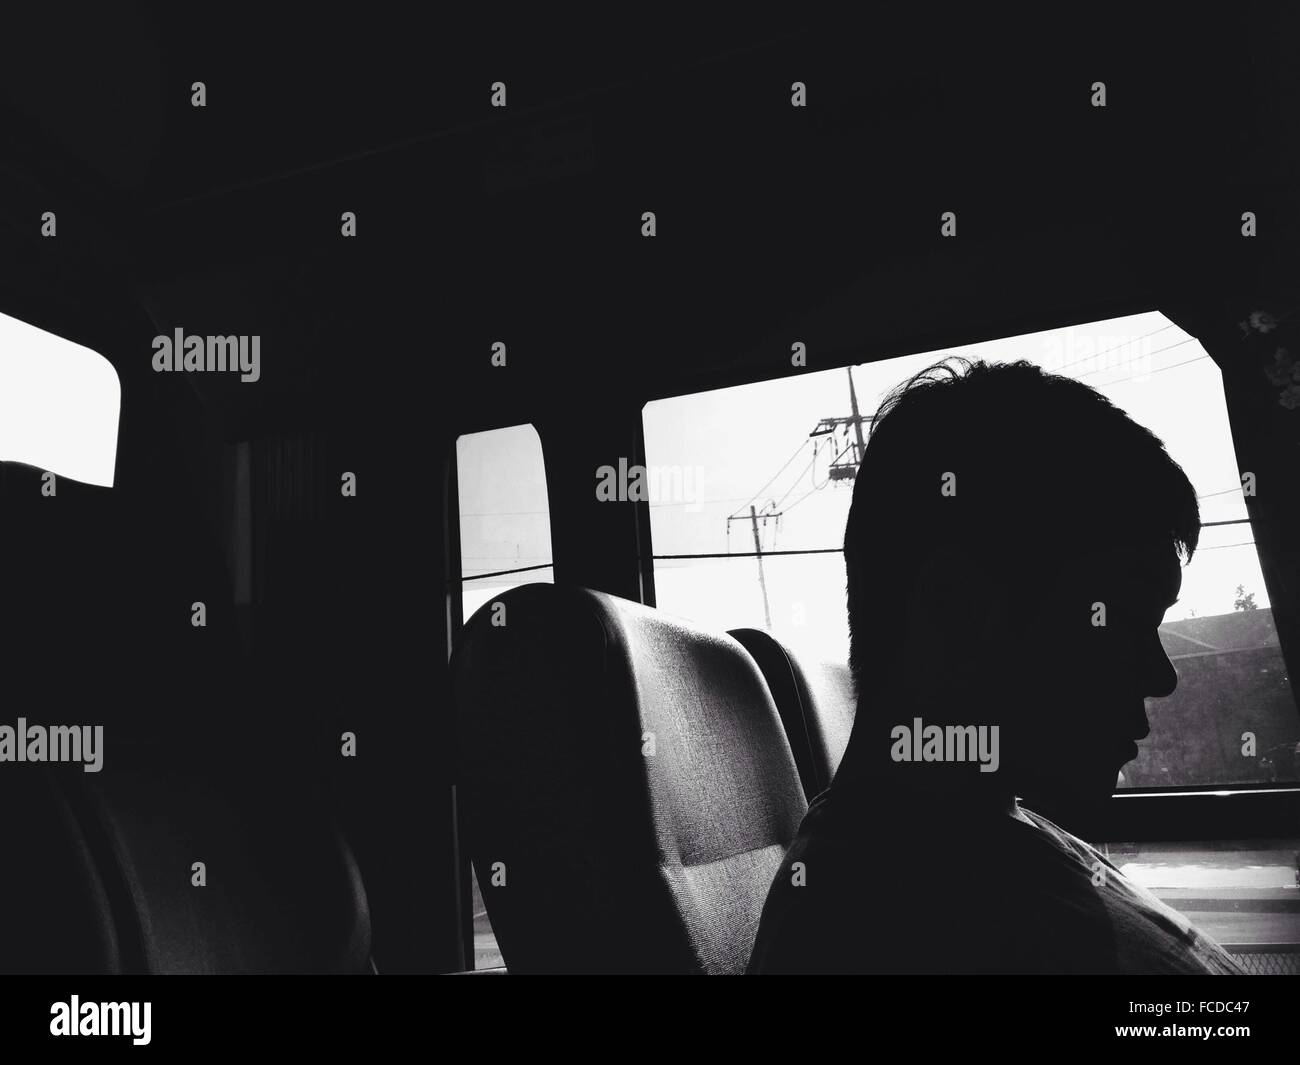 Silhouette Of Man Sitting Inside Car - Stock Image